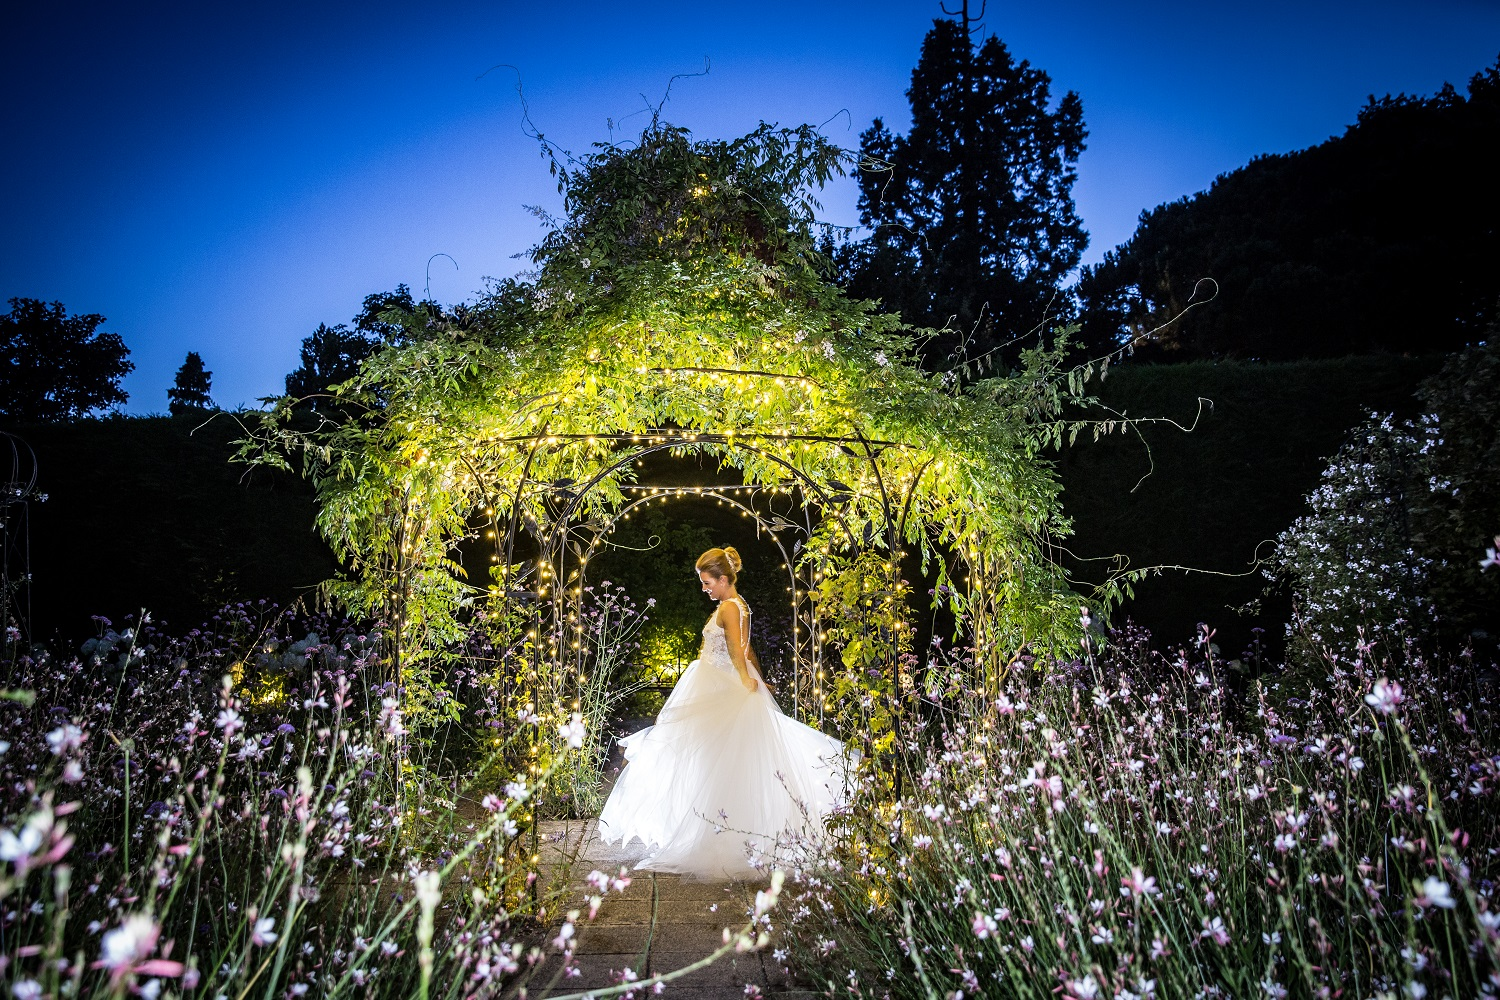 Offers… - We also offer discounts for midweek weddings (Monday-Thursday) Contact us for more information.